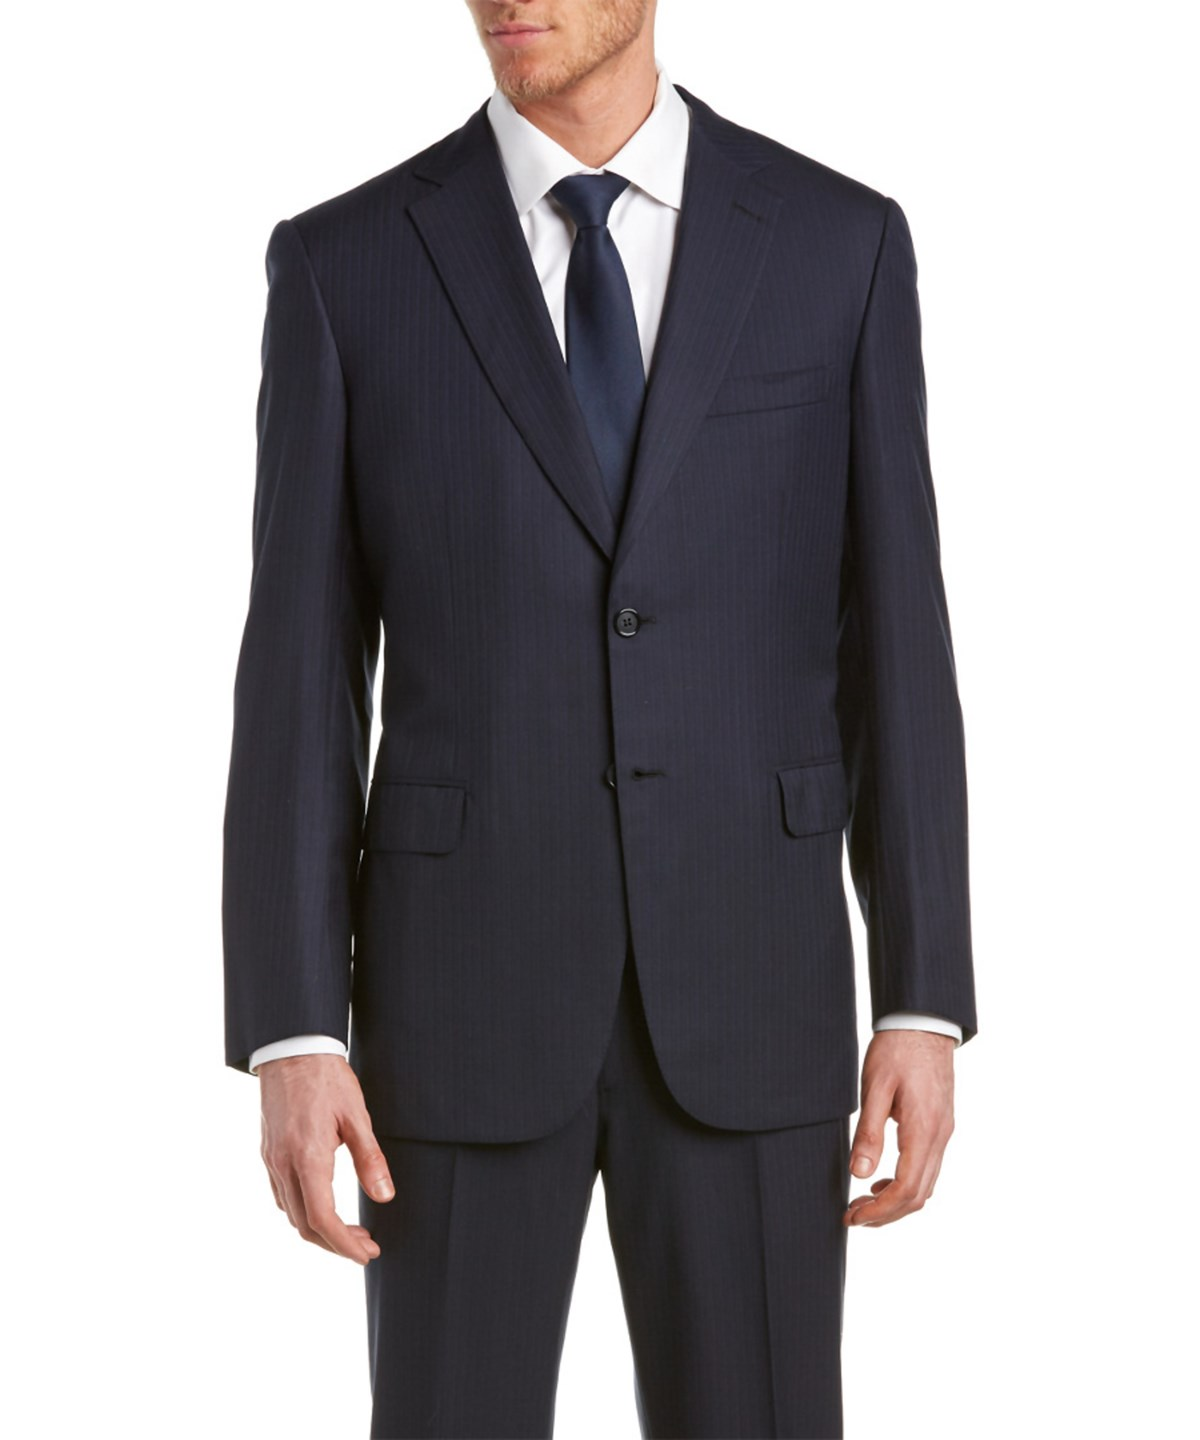 Brioni Wool Suit With Flat Front Pant In Multiple Colors